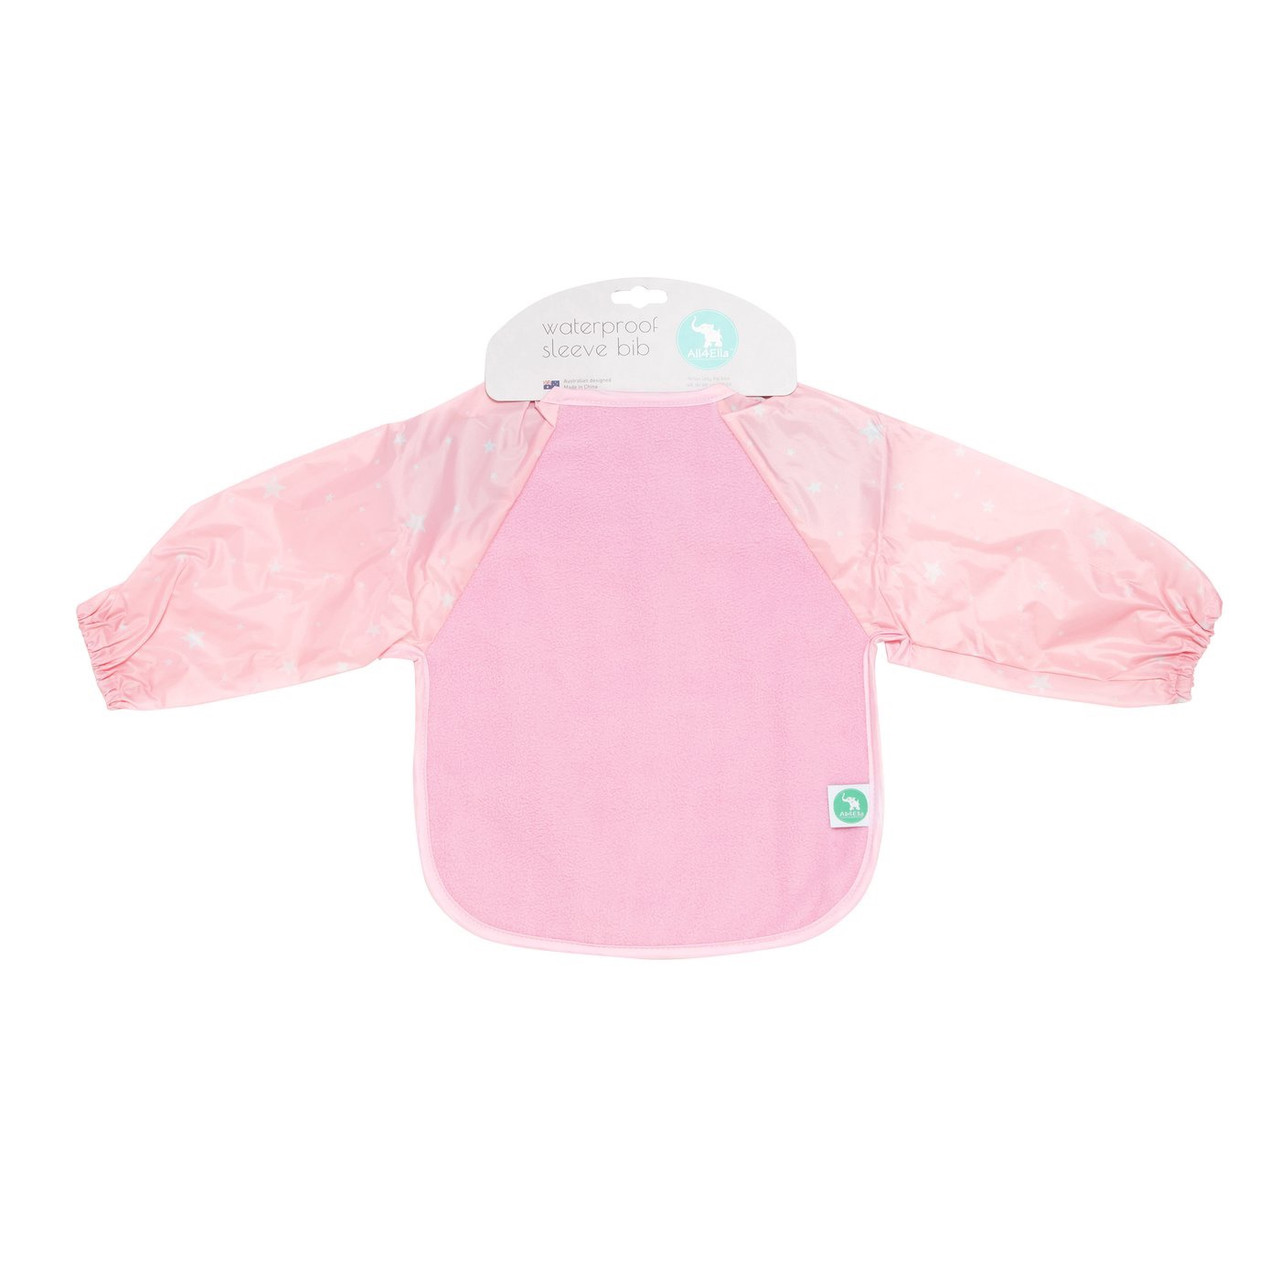 All4Ella Waterproof Long Sleeve Bib STAR PINK at Baby Barn Discounts All4Ella gorgeous bibs are not only functional but fashionable and have an adjustable neck